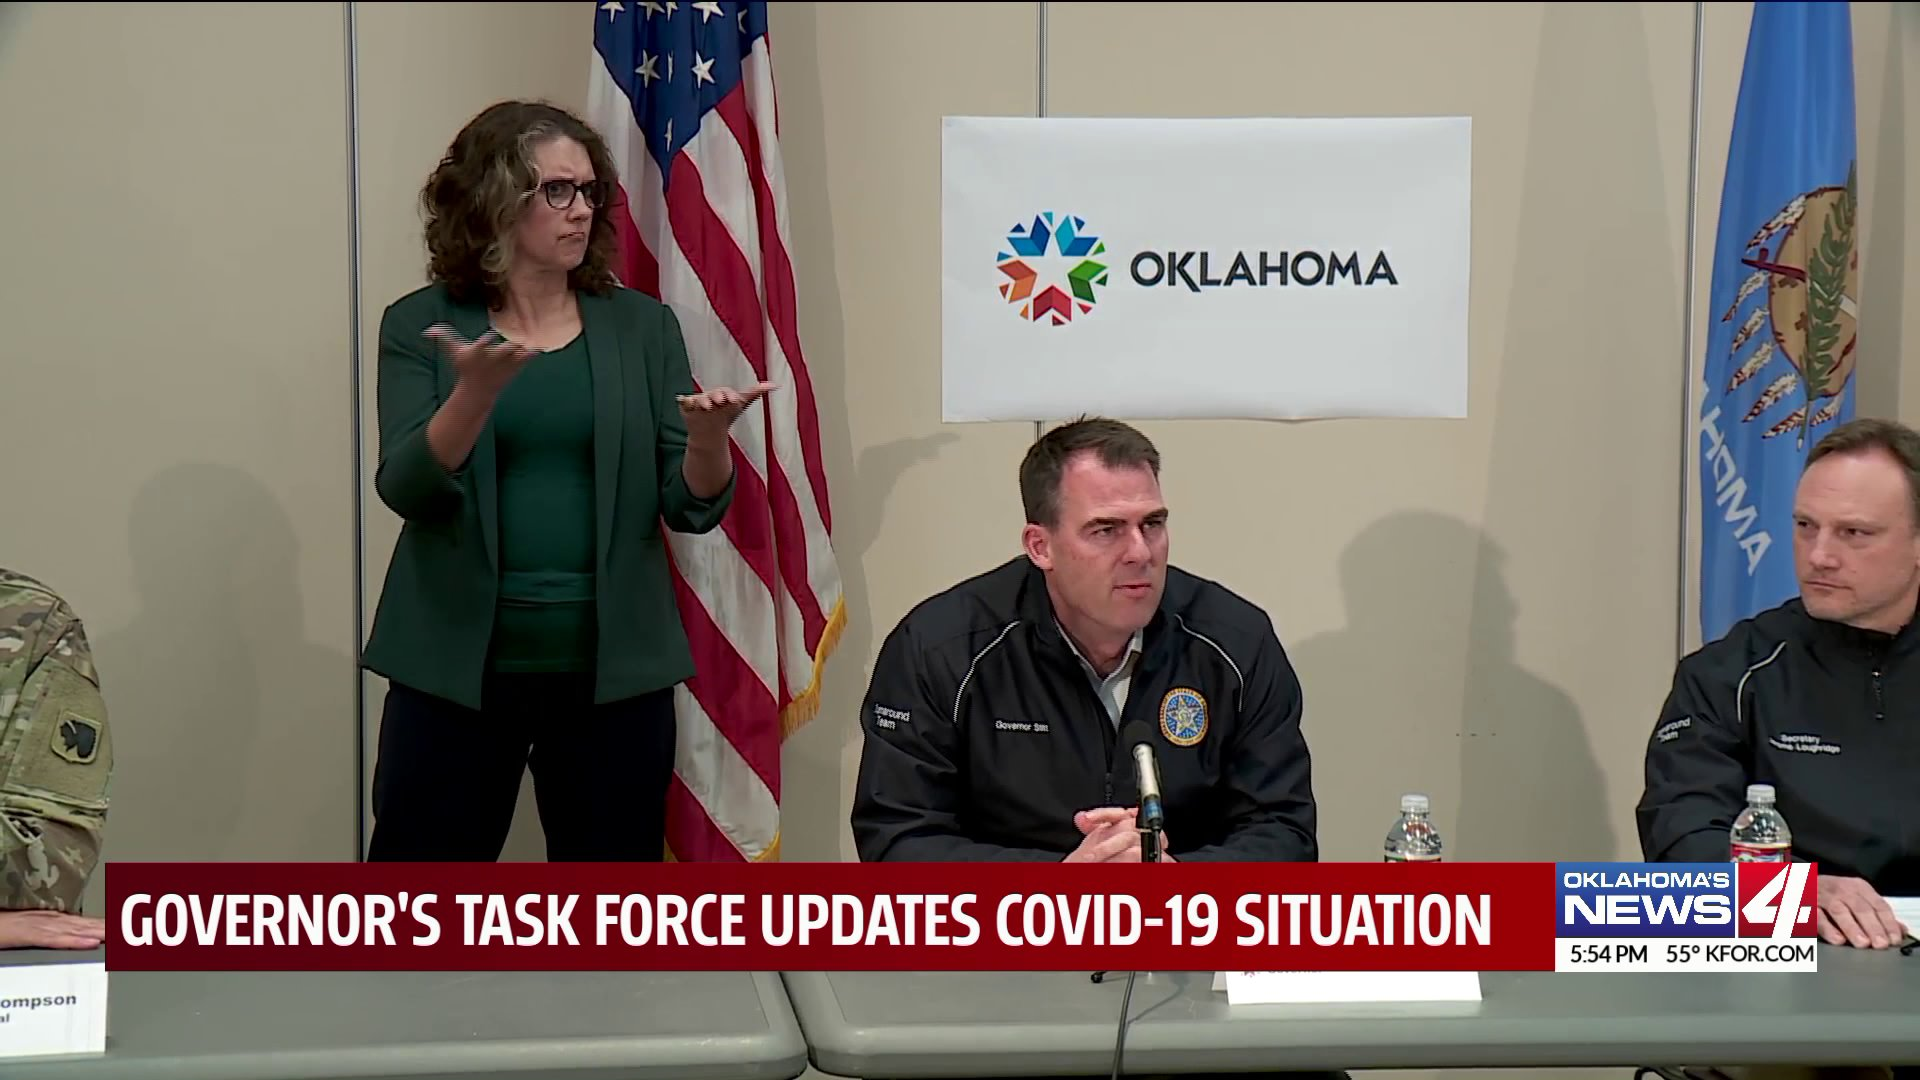 Governor Kevin Stitt gives update to Oklahoma's COVID-19 situation